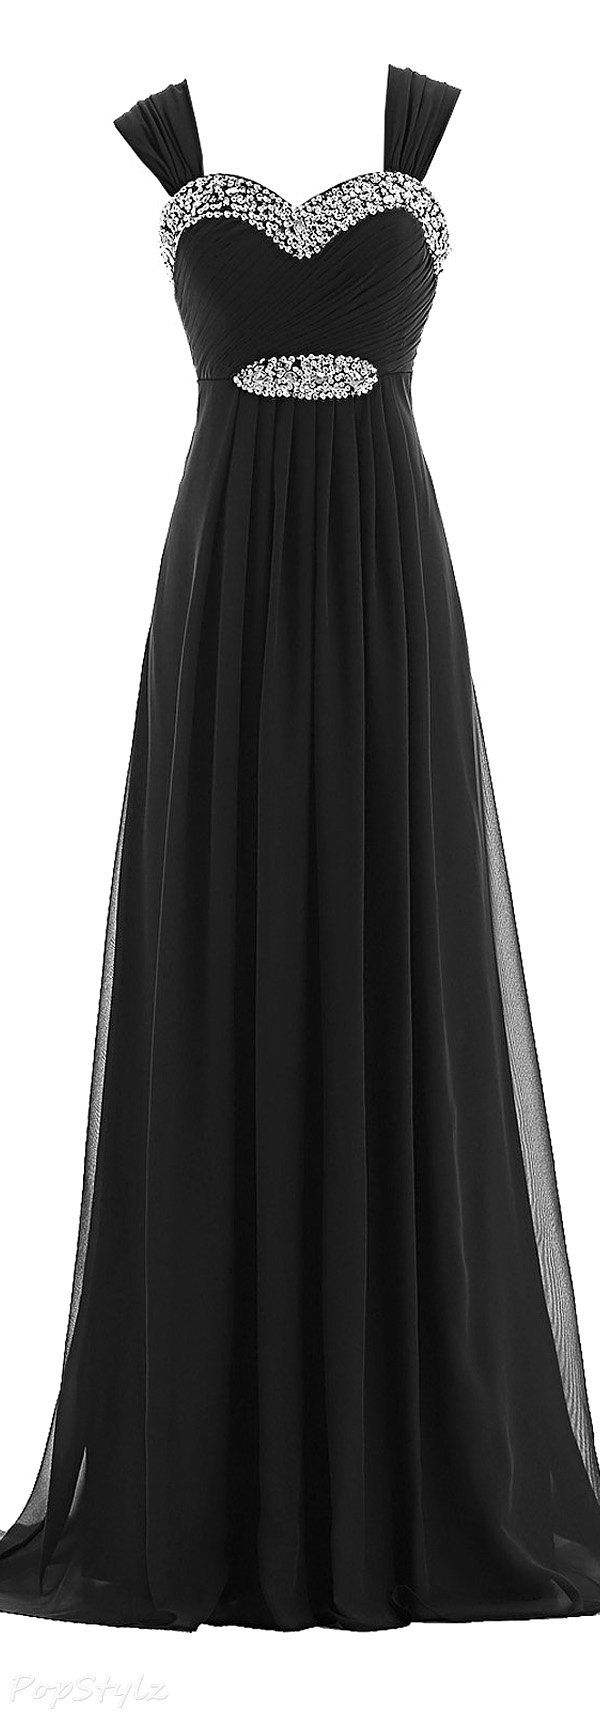 Sunvary Fashion Straps Formal Evening Gown